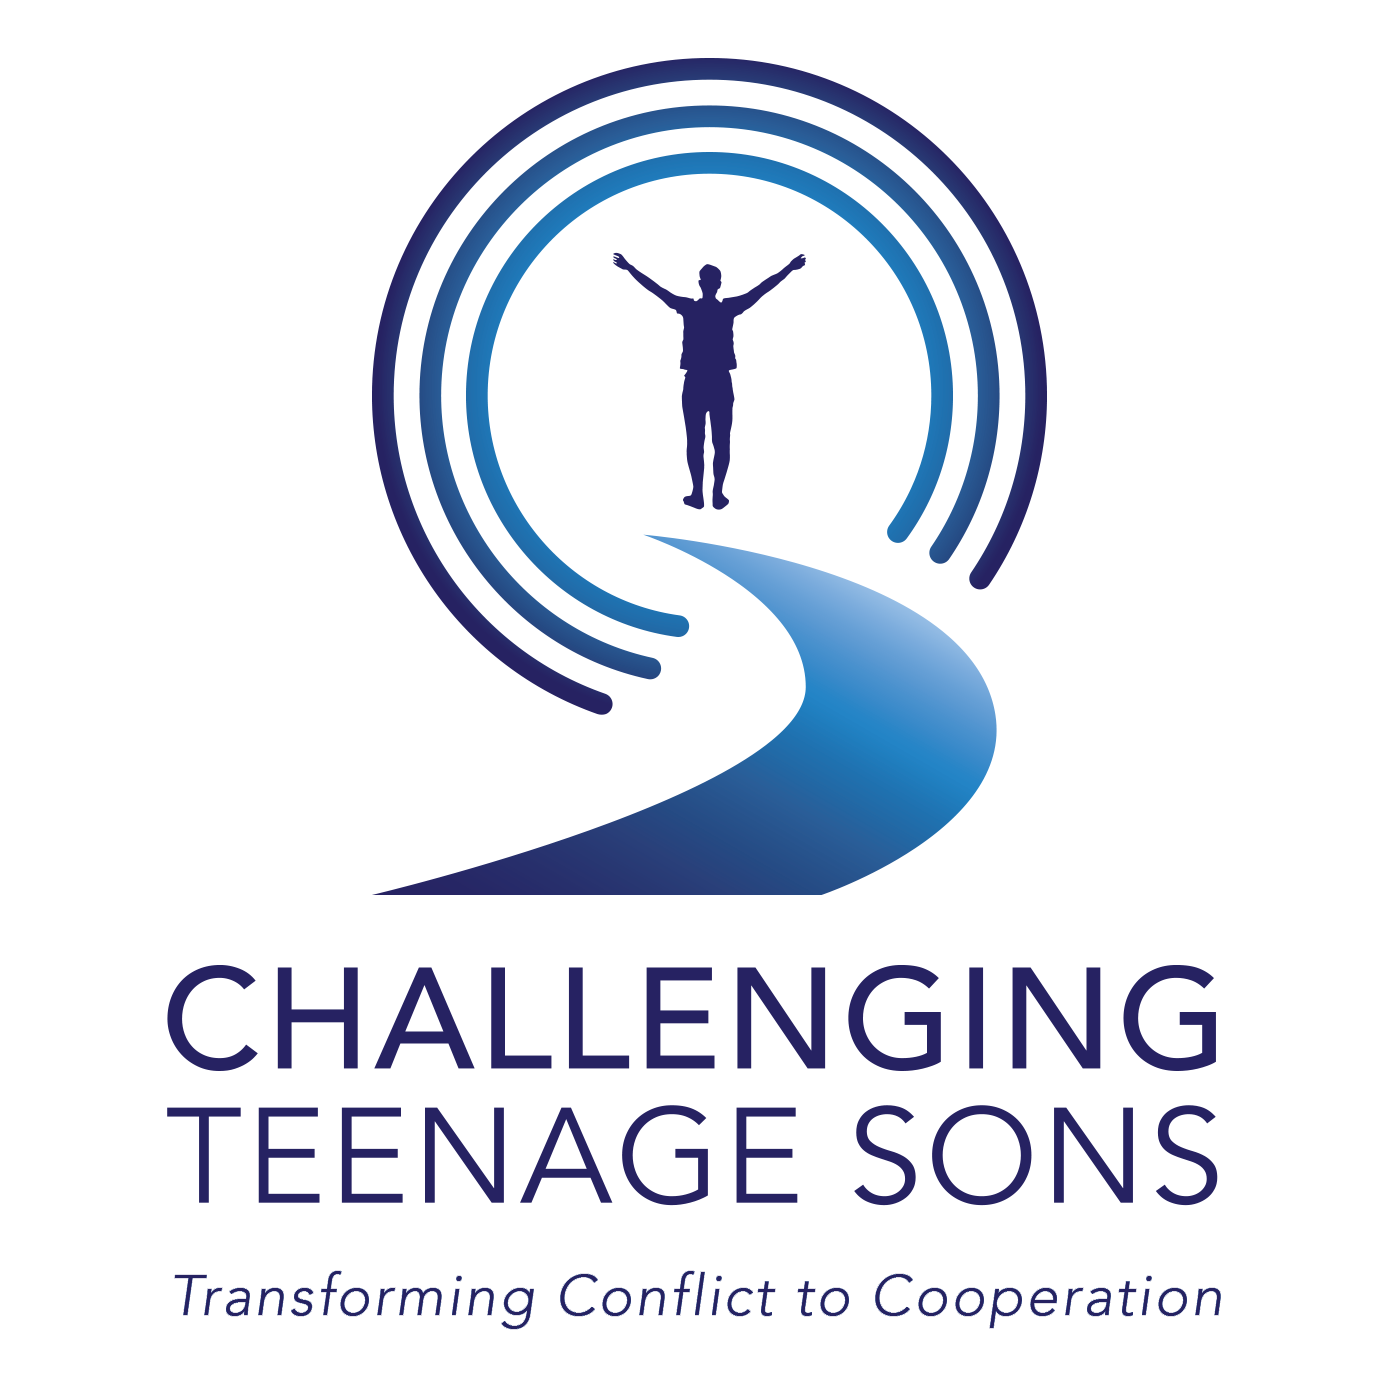 Challenging Teenage Sons